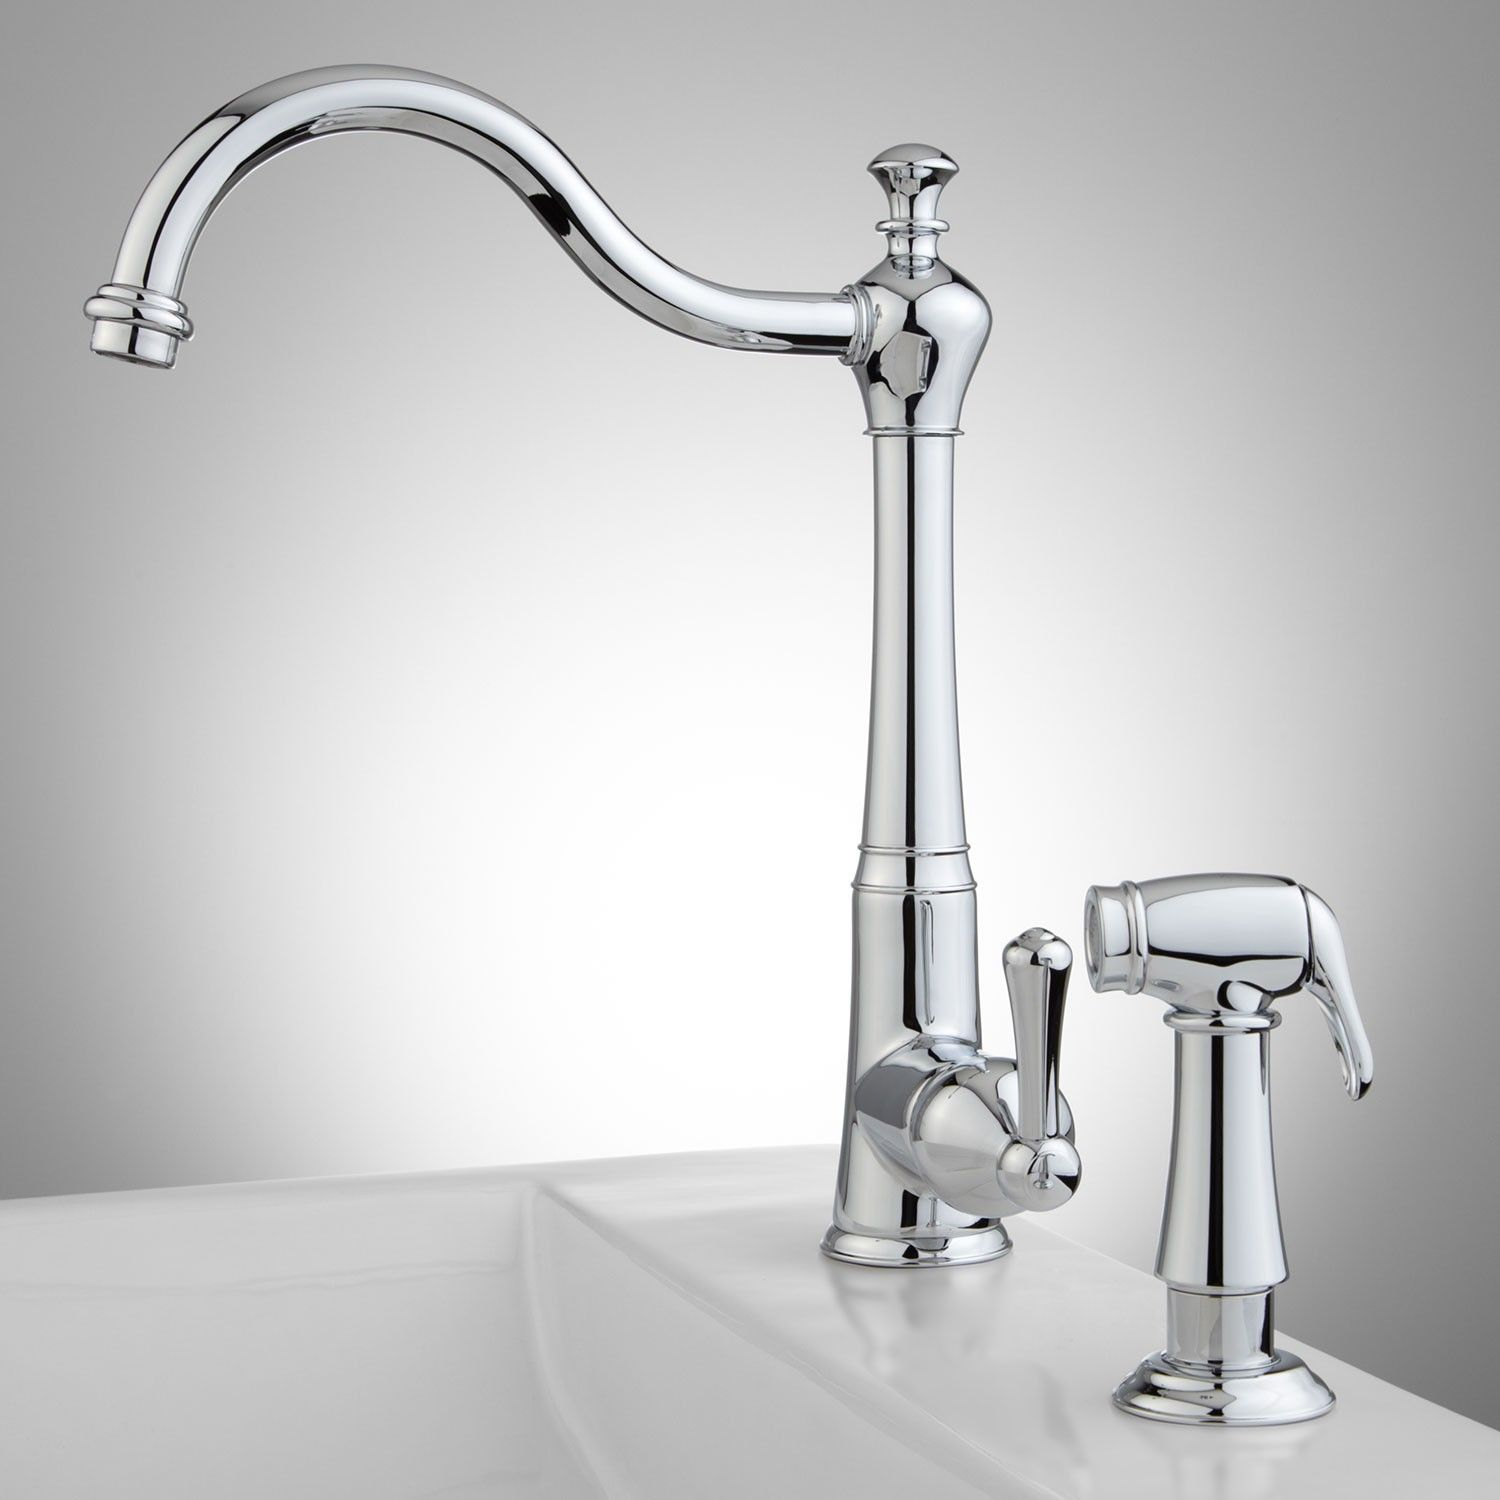 Sonoma Kitchen Faucet with Handspray - Kitchen Faucets - Kitchen ...